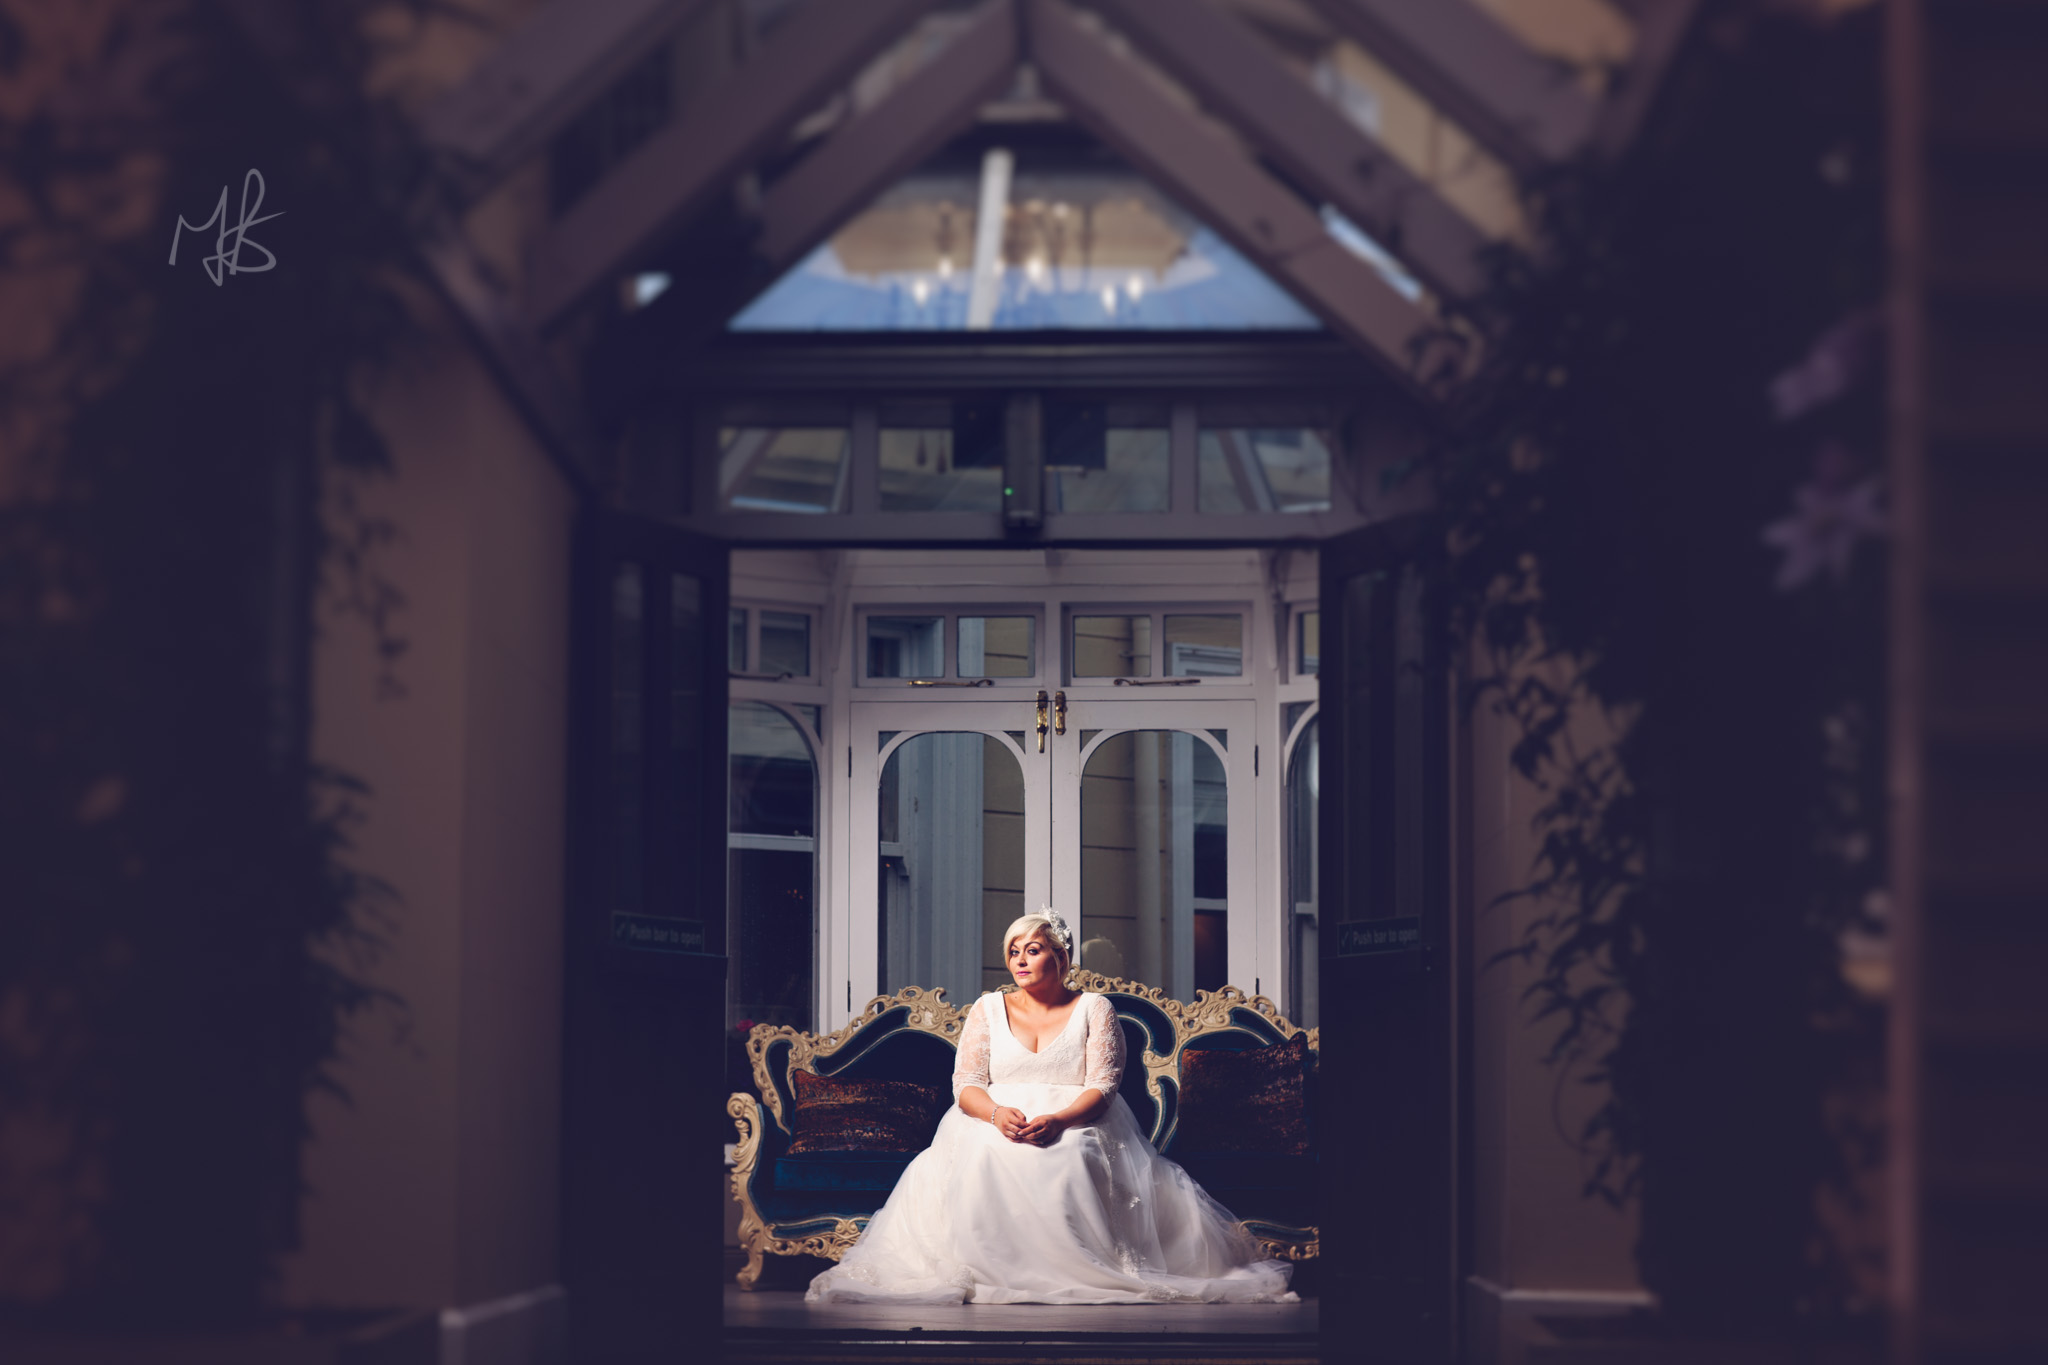 Northern-Ireland-Wedding-Photographer-Mark-Barnes-Ballymena_wedding-photography-Leighinmohr-House-Seamas_Alanna_For-web-46.jpg